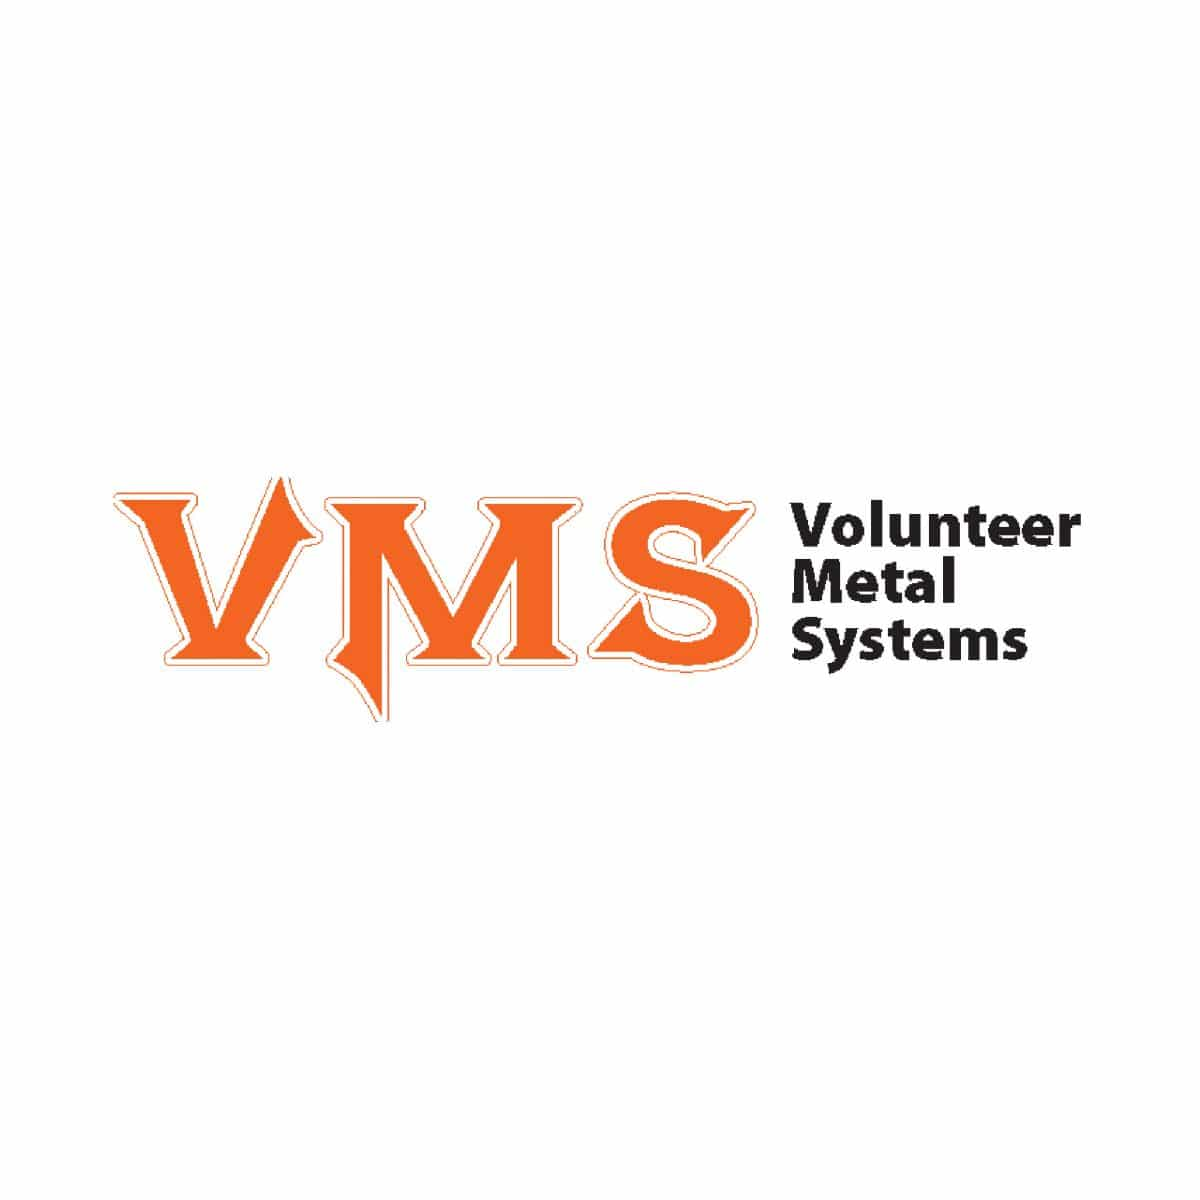 Volunteer Metals